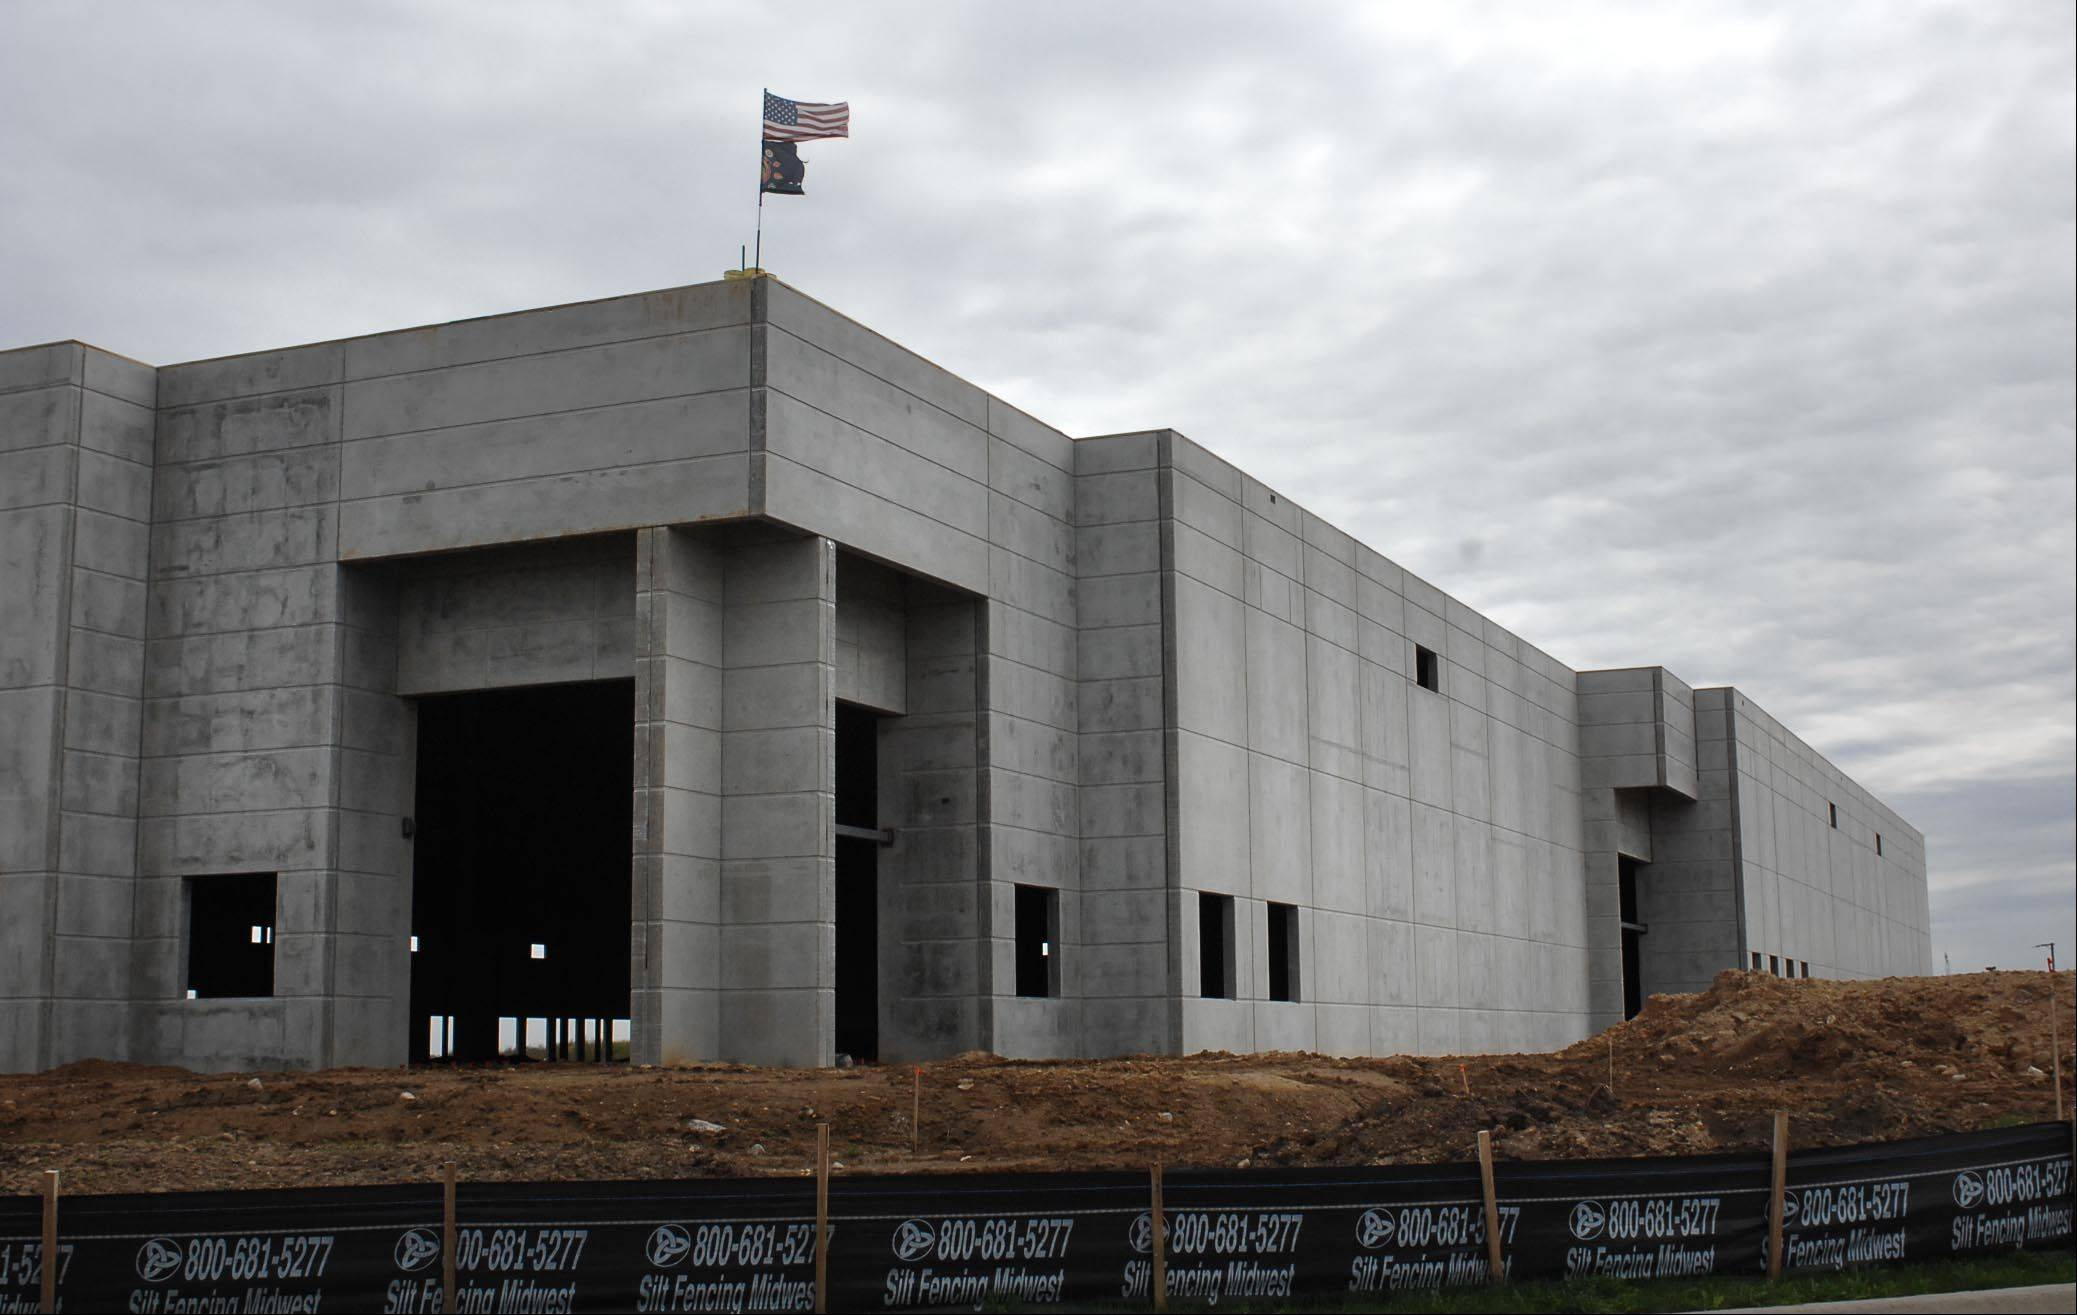 The Nationwide Freight Systems building is under construction near Randall and Big Timber in Elgin. The company specializes in third party logistics and transportation.